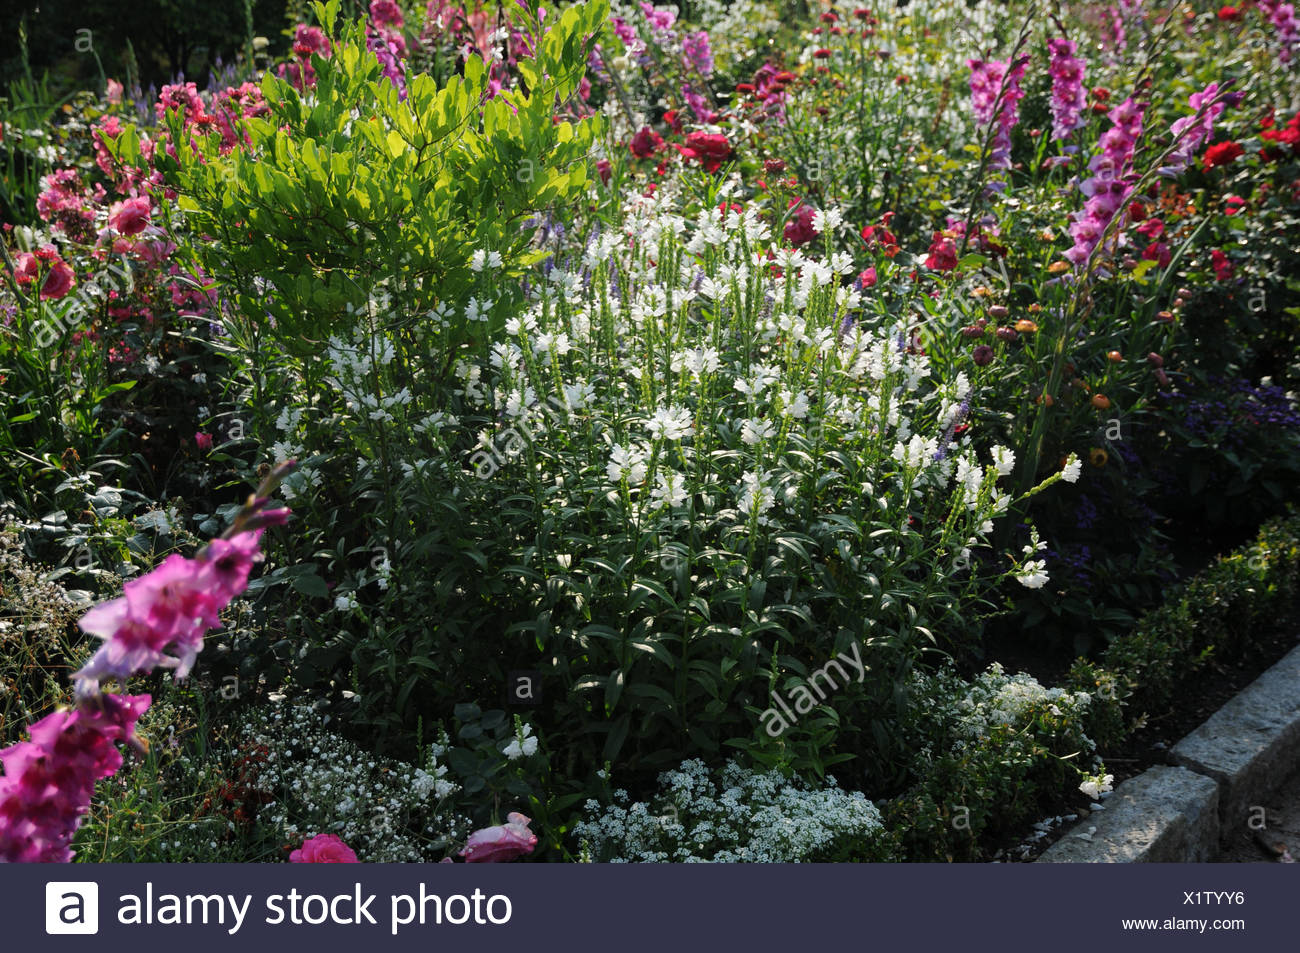 Obedient plant - Stock Image